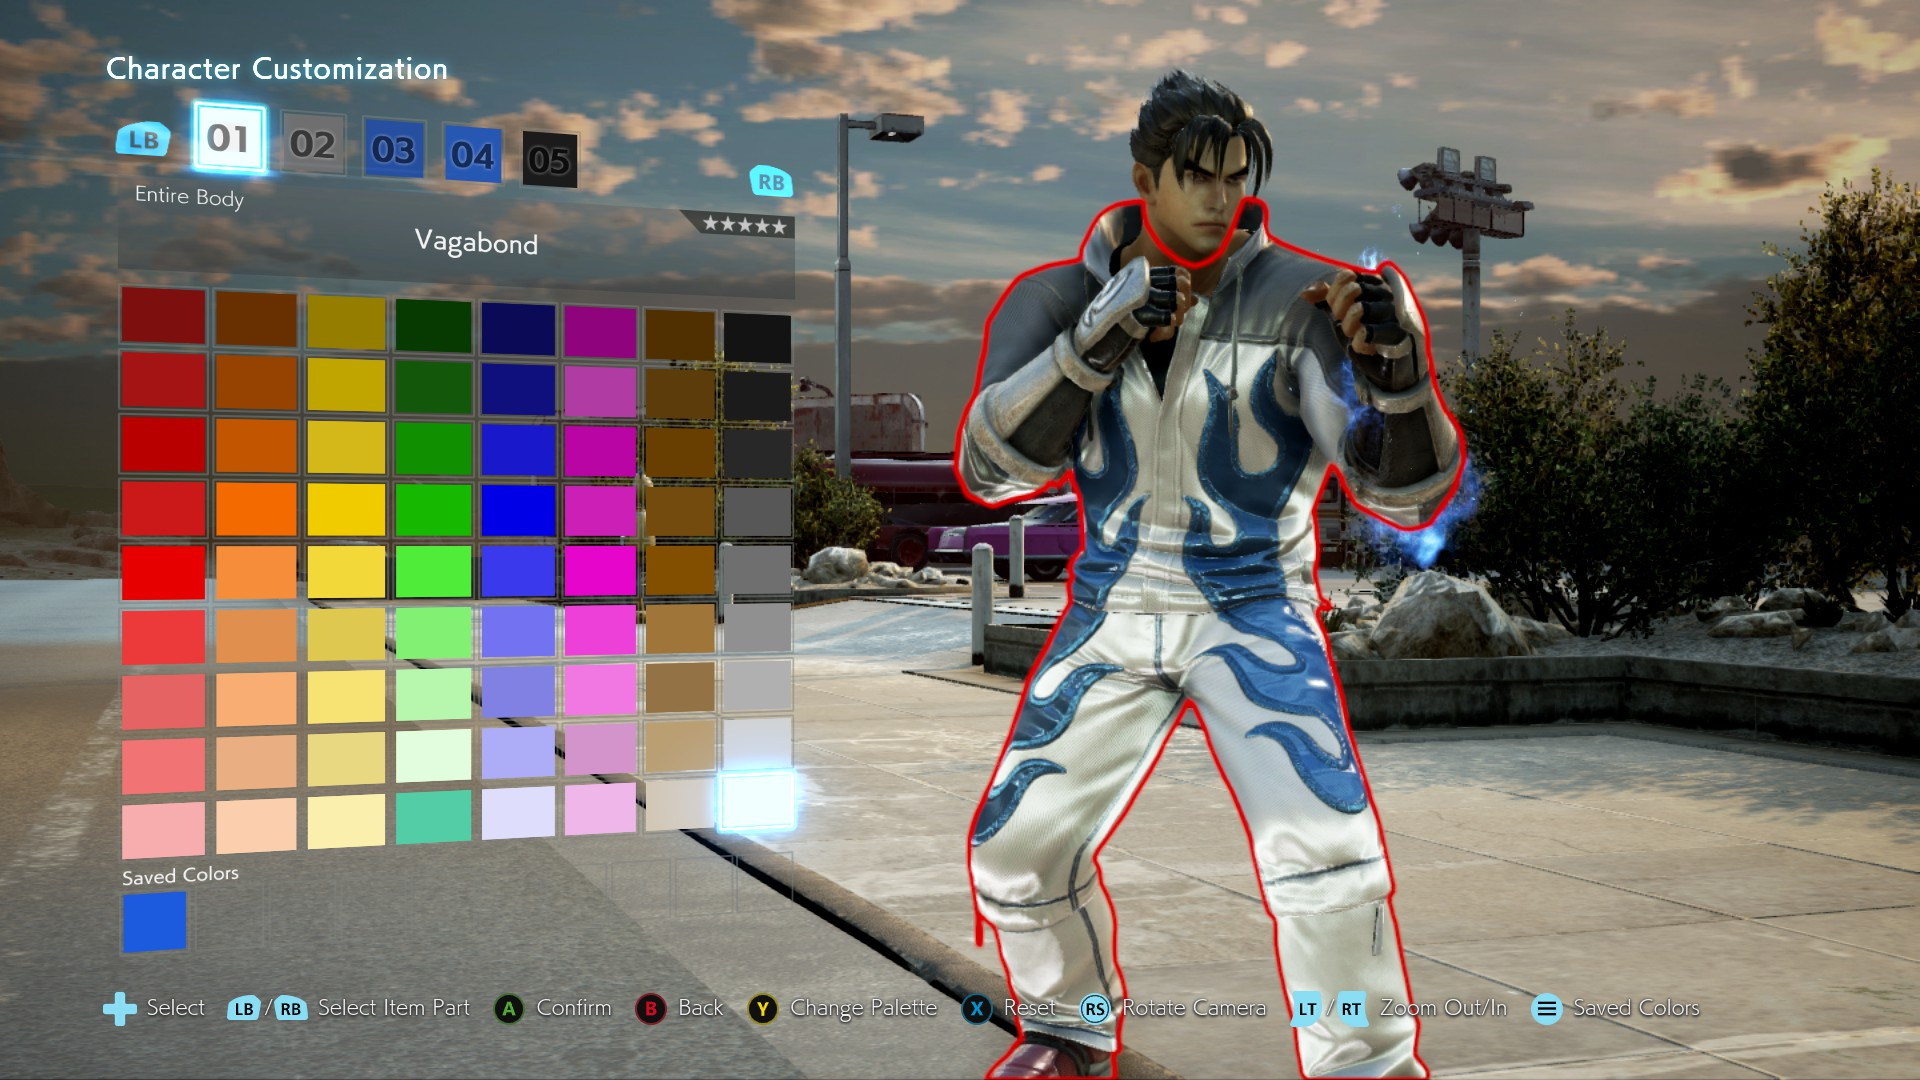 Tekken 7 PC - Jin's Tekken 4 Costume Mod Now Available - News